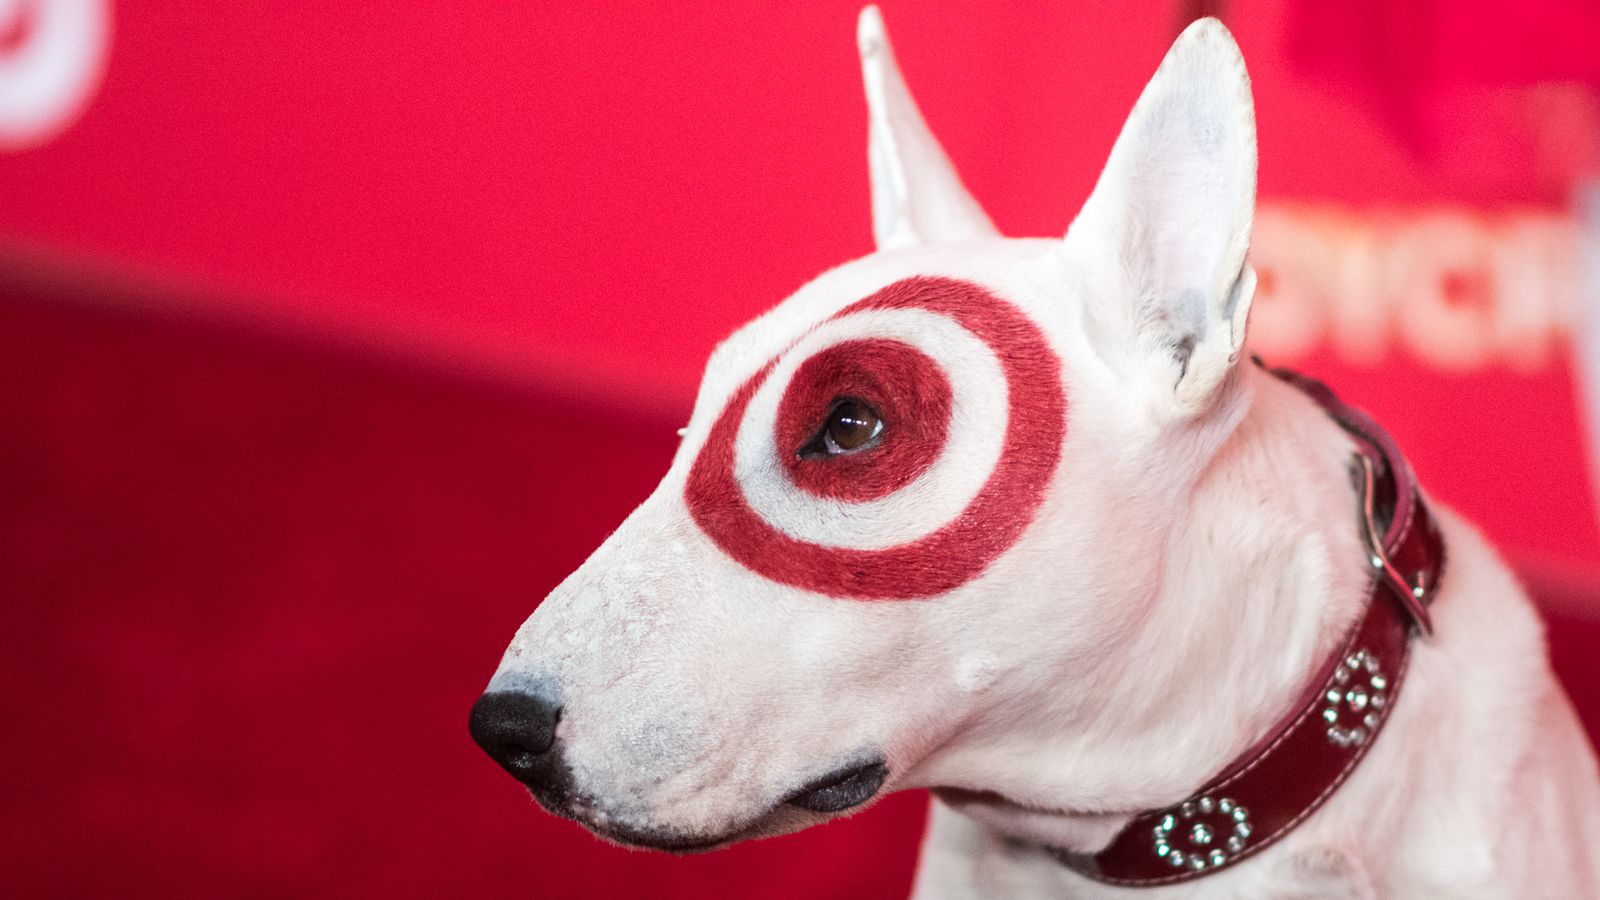 Recode daily target settles its massive security breach What kind of dog is the target mascot